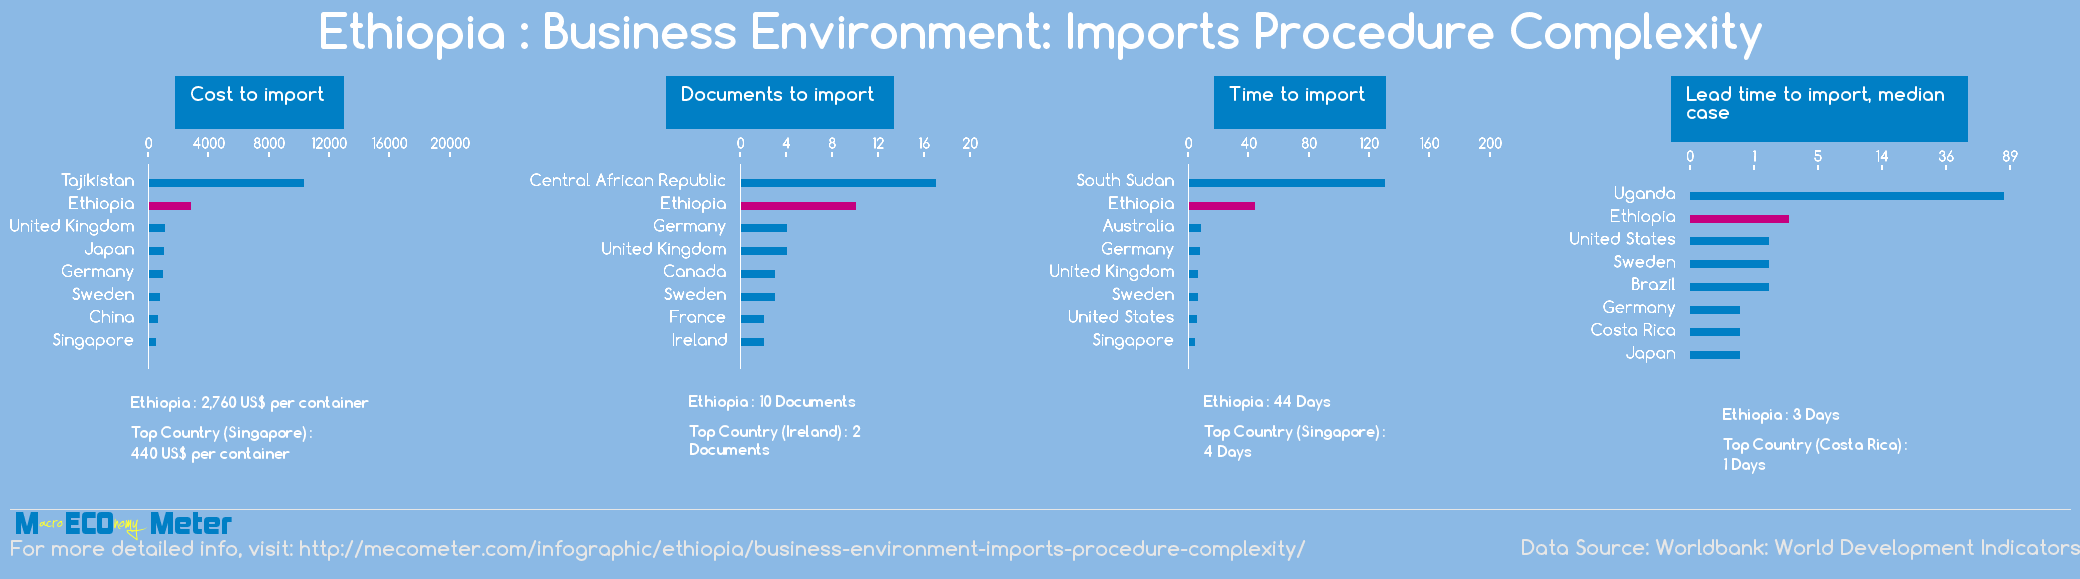 Ethiopia : Business Environment: Imports Procedure Complexity